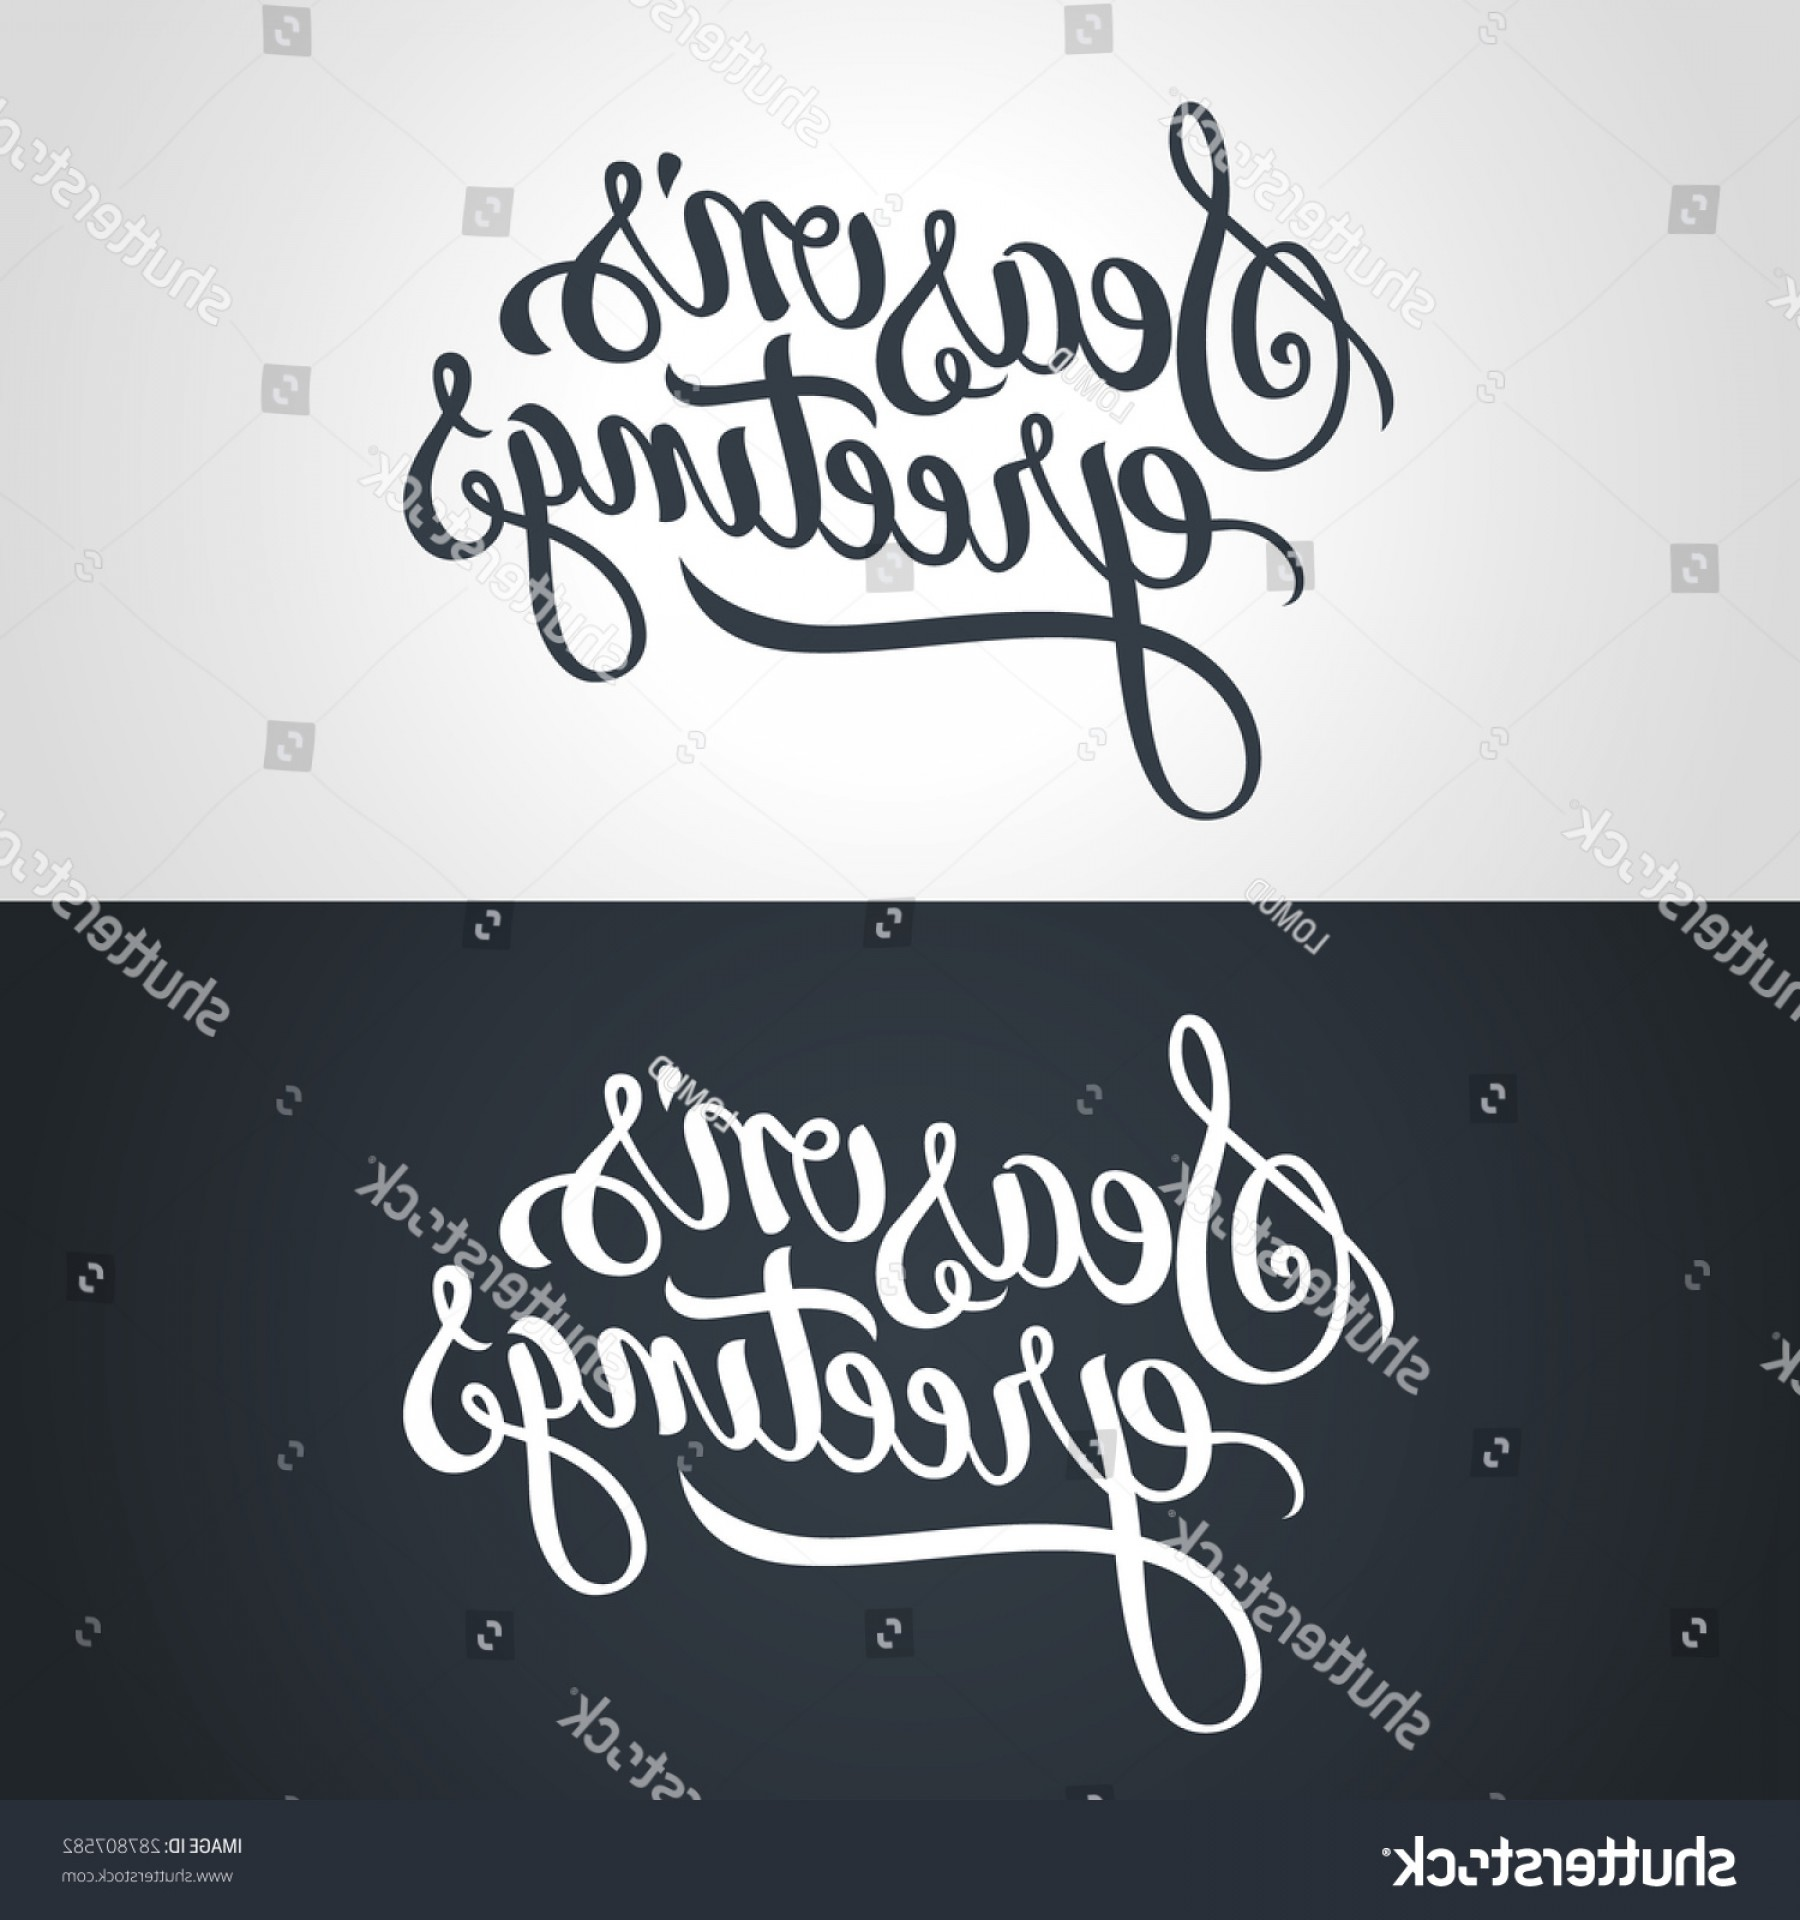 Season S Greetings Vector Free: Shutterstock Seasons Greetings Hand Lettering